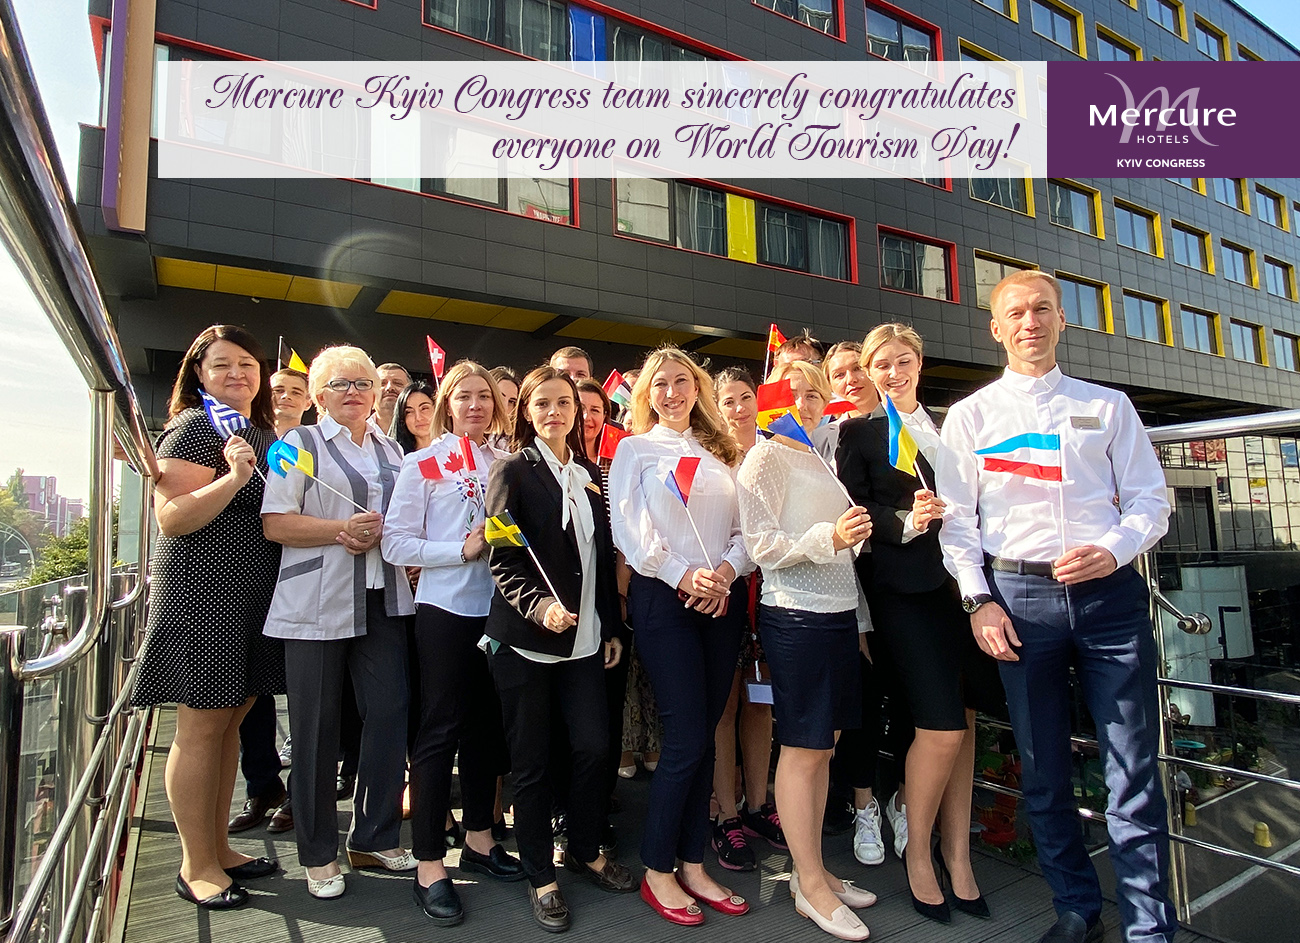 Mercure Kyiv Congress team sincerely congratulates everyone on World Tourism Day!